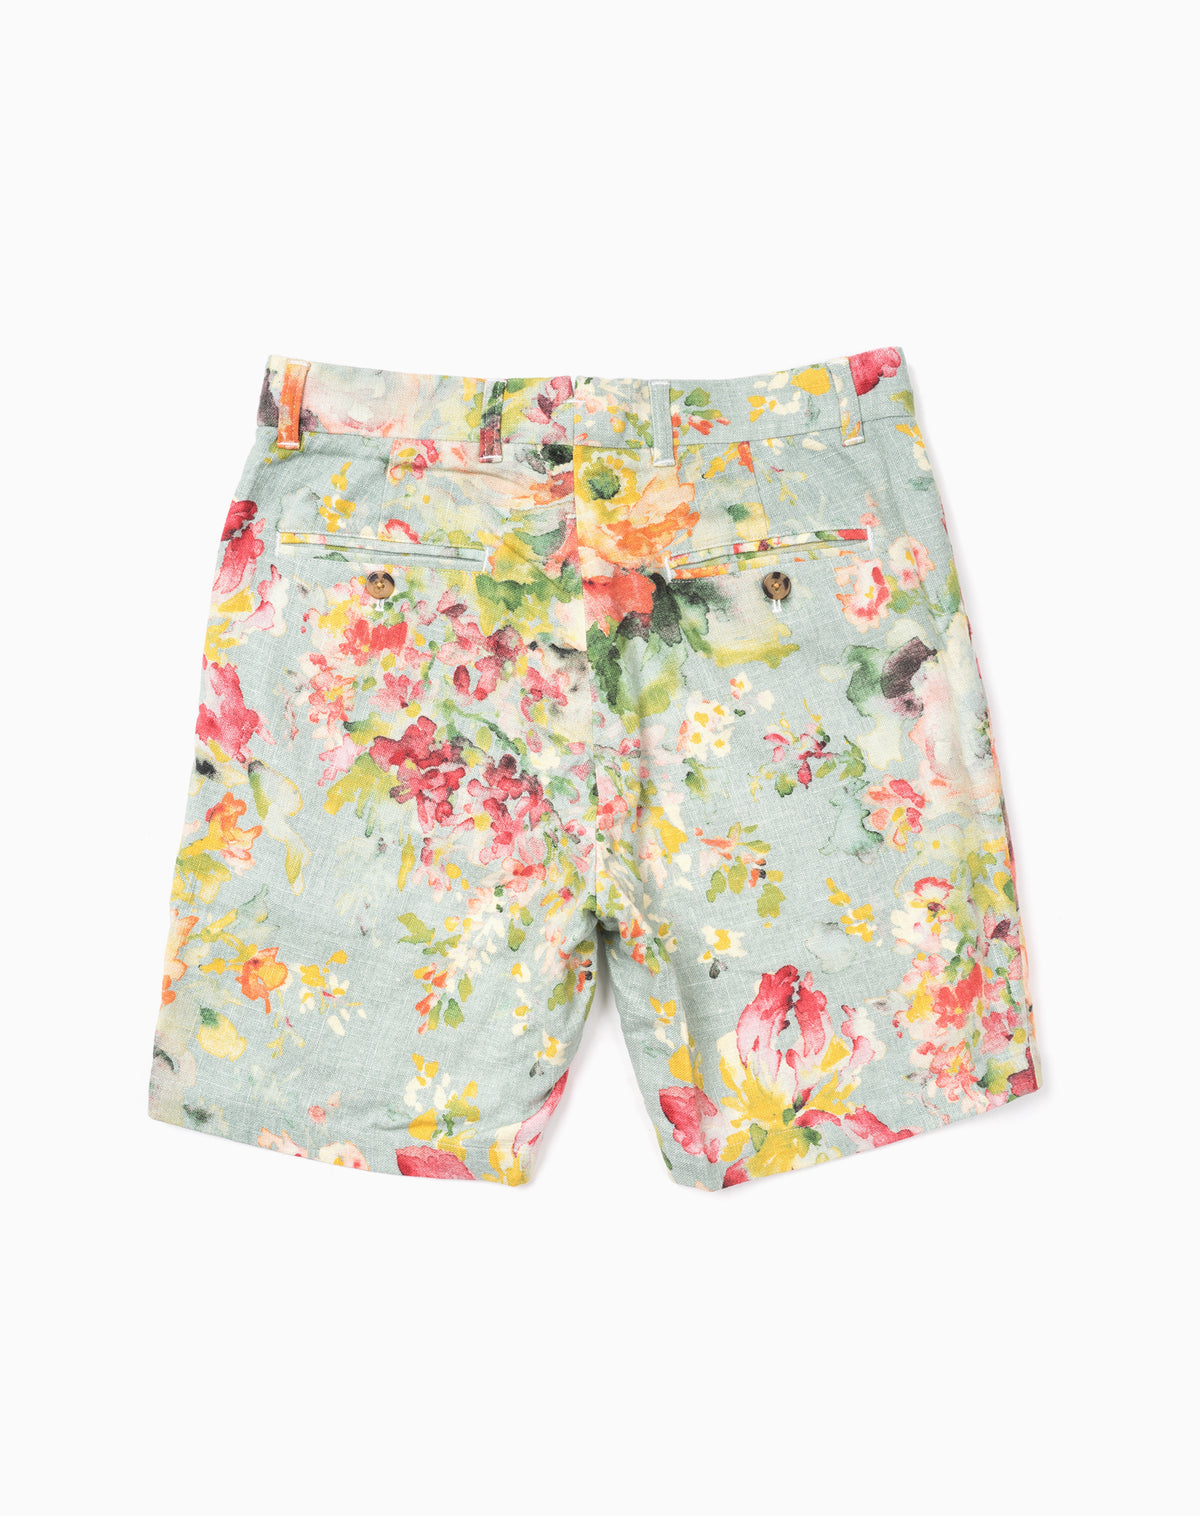 Printed Short in Multi Floral